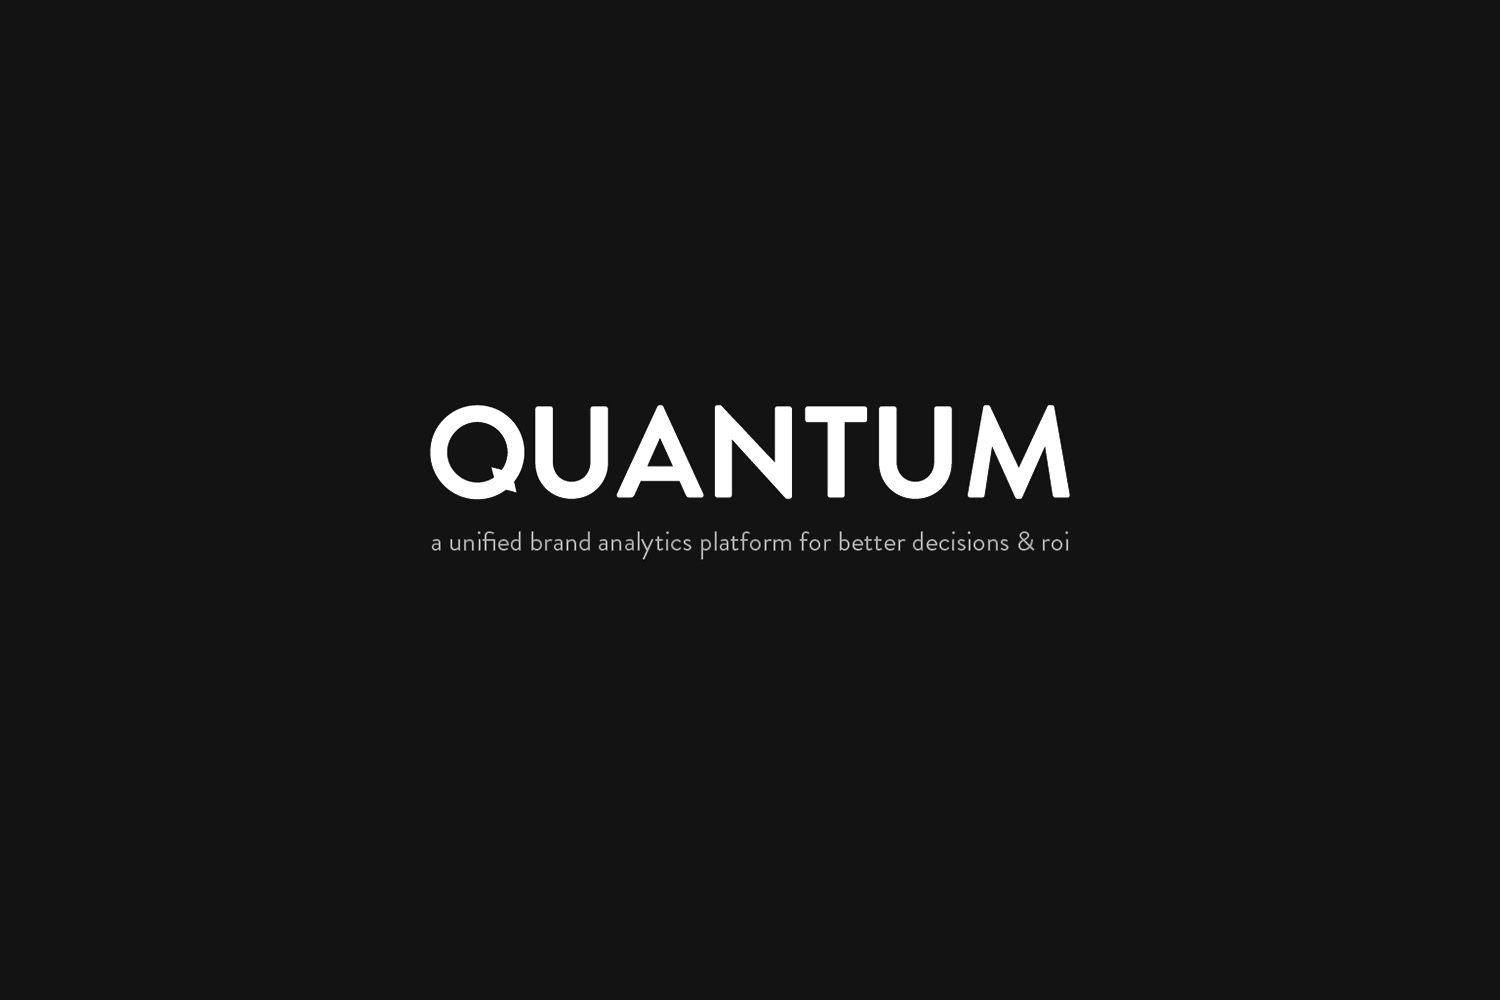 """QUANTUM is a unified artificial intelligence-powered brand analytics platform for better decision making and higher ROI. Quantum moves brands beyond marketing mix modeling and multi-touch attribution to understand the """"why"""" behind the """"what"""" with 1- predictive drivers of results. It's a real-time, data-driven GPS to help brands navigate through the marketing landscape and accelerate growth.   https://www.weareblkbox.com/quantum/"""